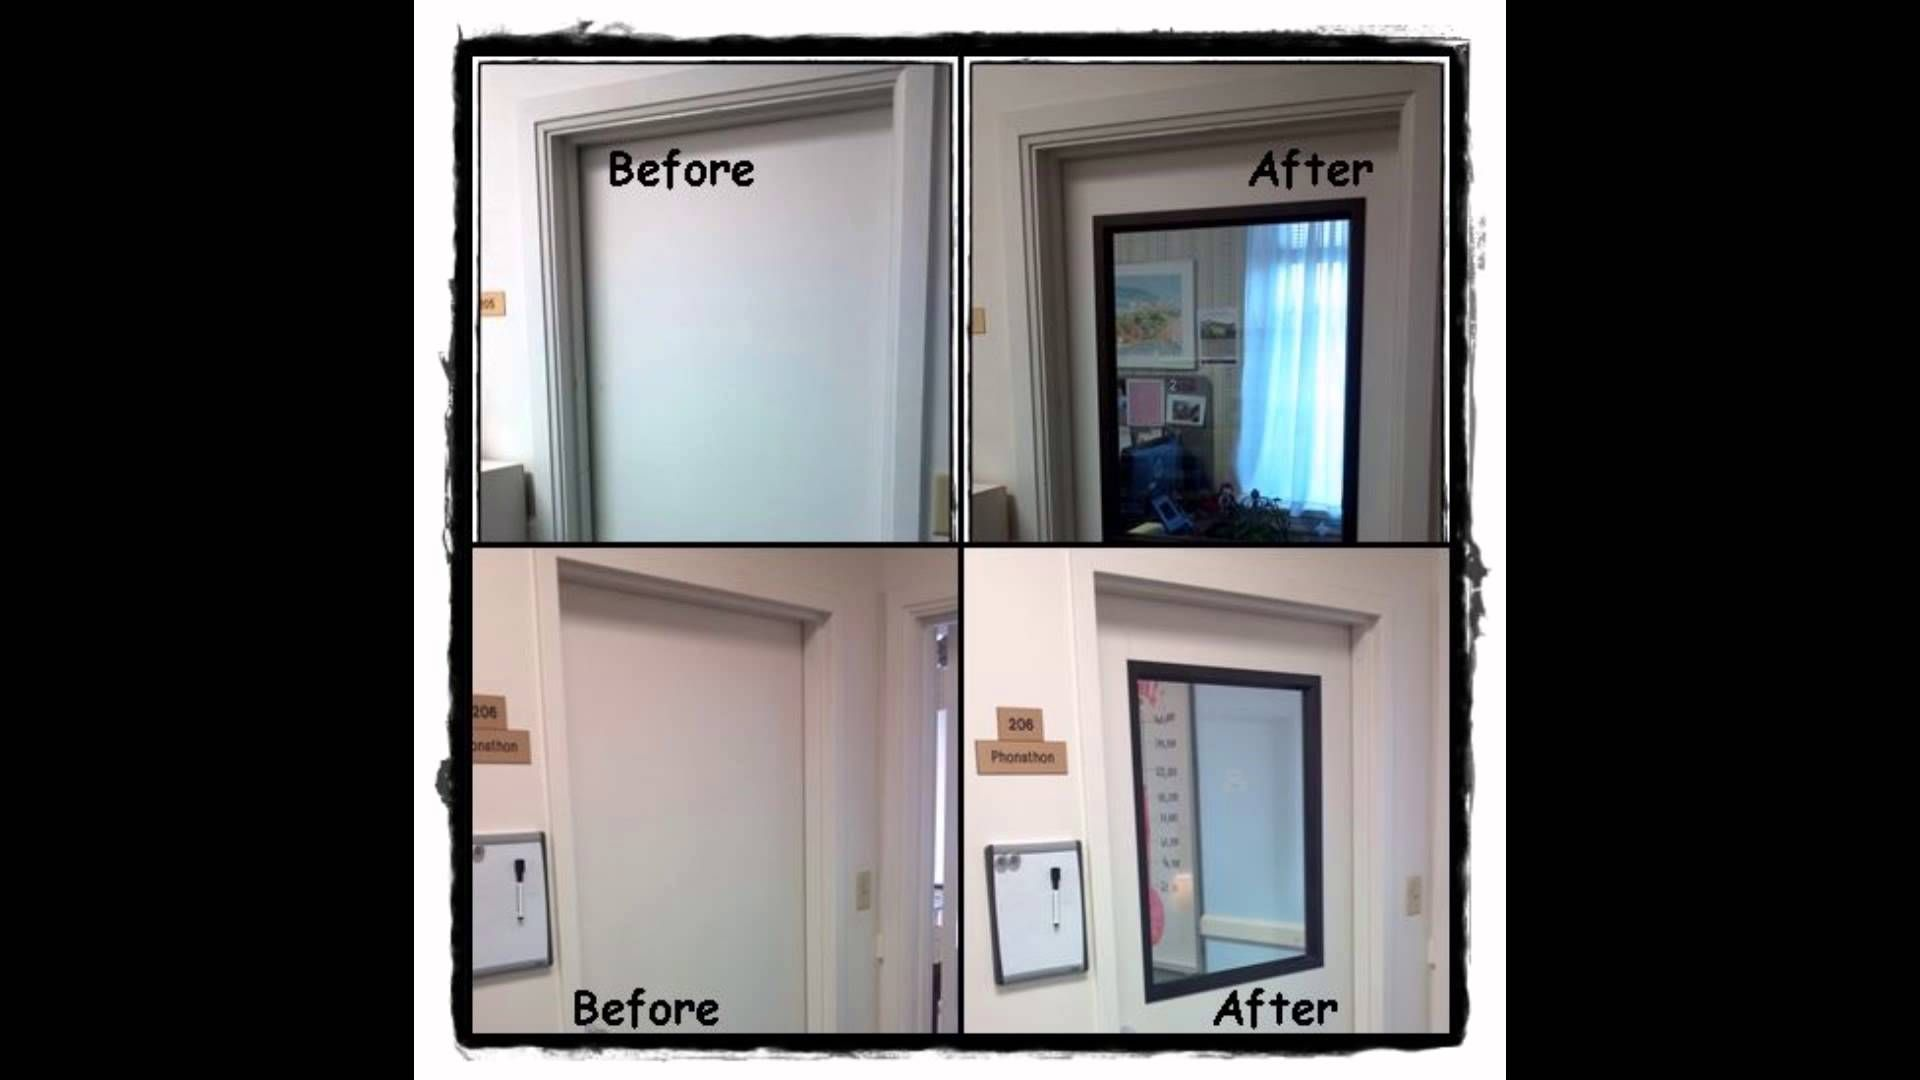 Vision Kits And Glass Supplied And Installed By House Of Doors Roanoke Va House Glass Supplies Installation